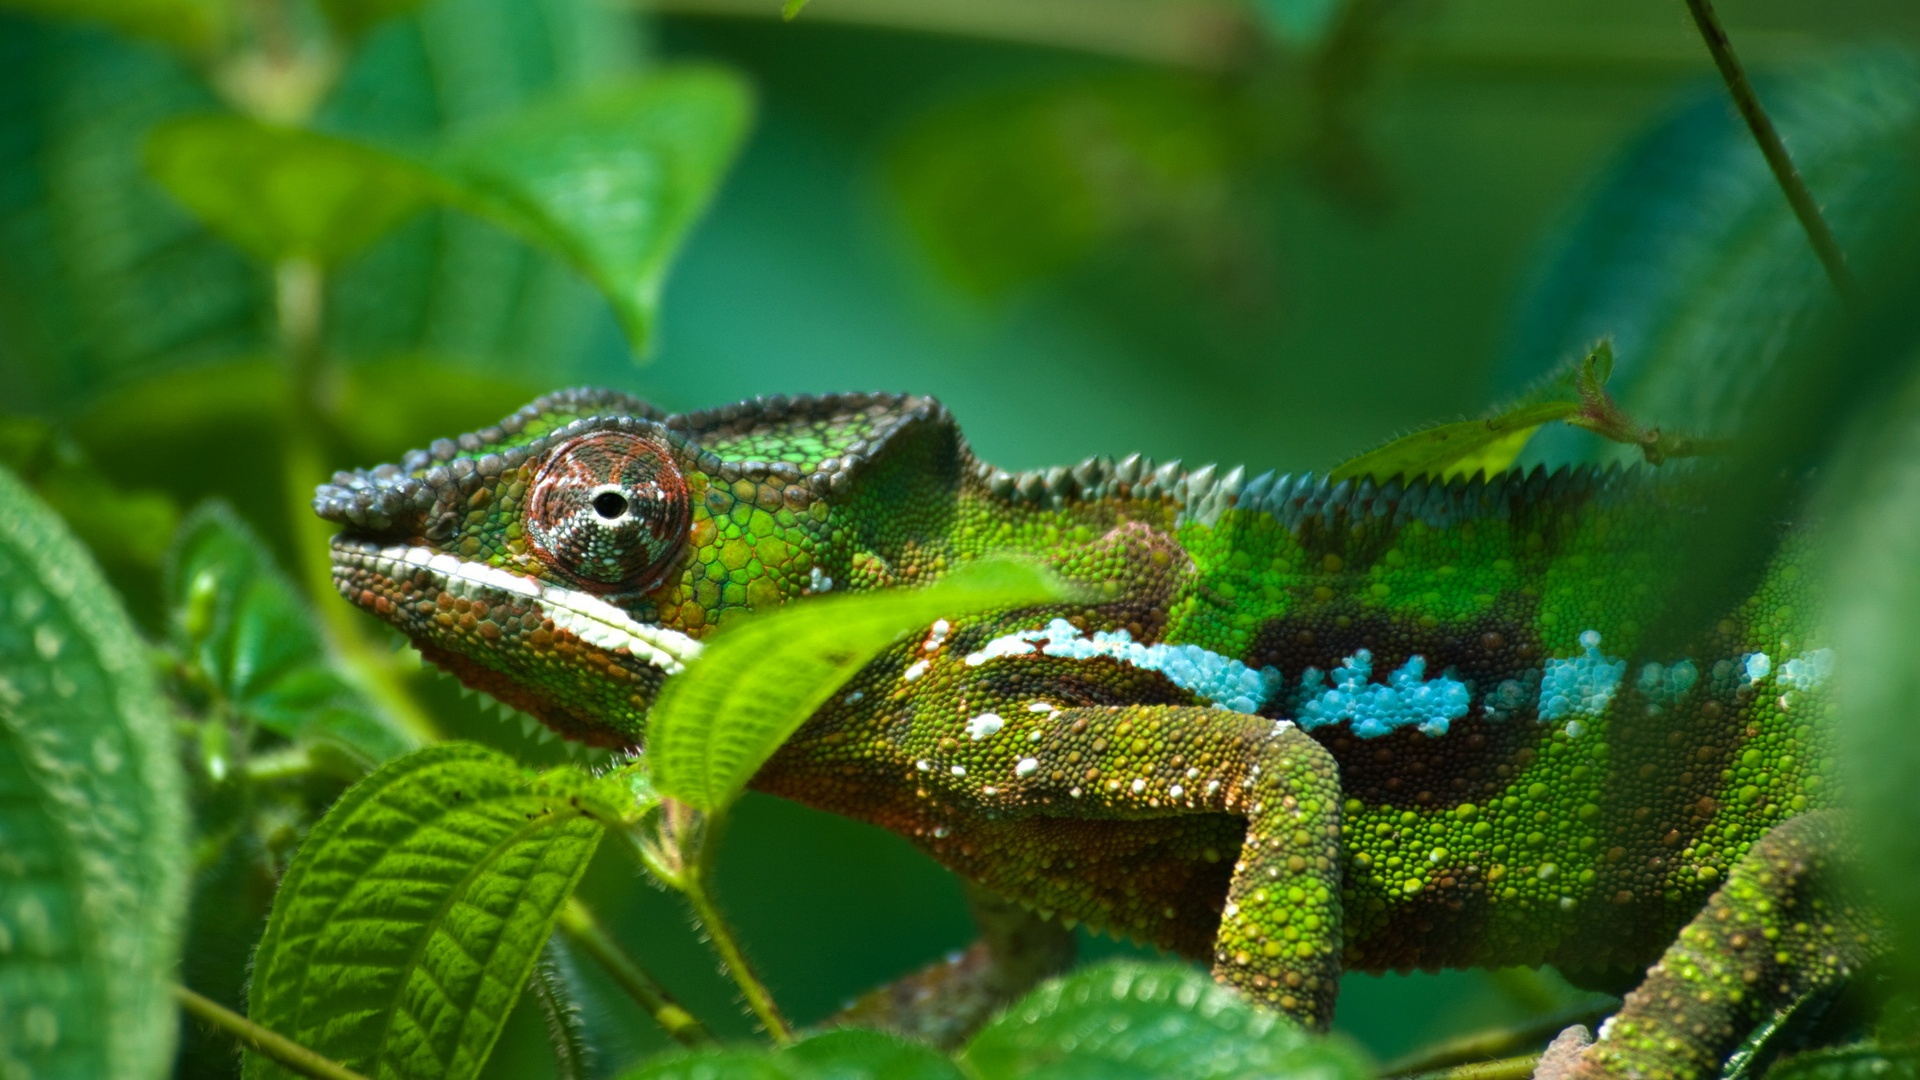 green chameleon widescreen wallpaper - photo #7